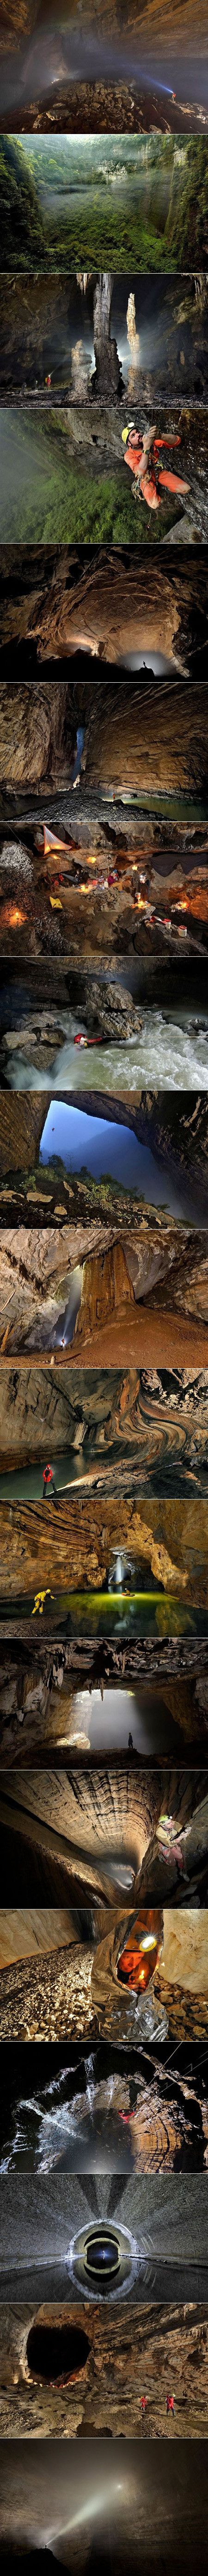 You read that right, a group of adventurers discovered a cave system so massive that it even has its own weather system, complete with wispy clouds and lingering fog. Expert cavers have explored some of the vast caverns in the Chongquing province of China and have taken the first-ever photographs of the natural wonder.